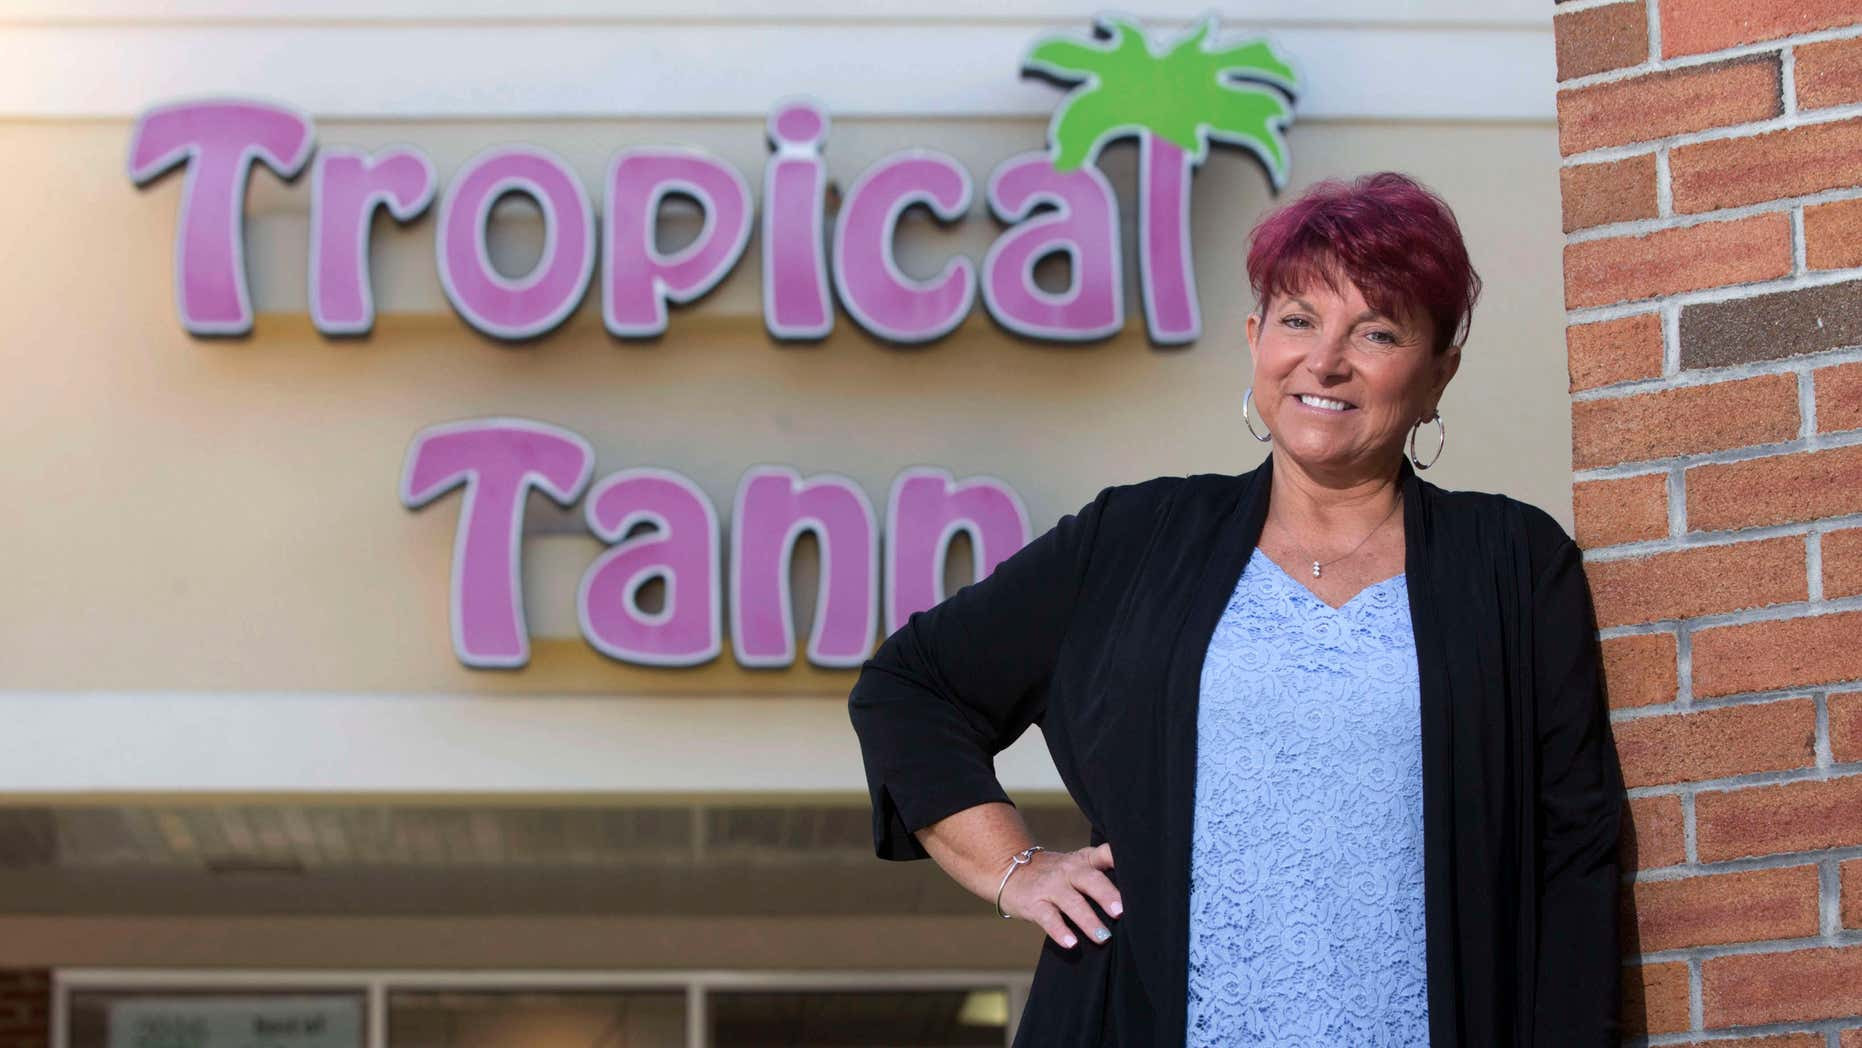 June 17, 2016: Kim Arnold stands for a photo outside her Tropical Tann business in Queensbury, N.Y.